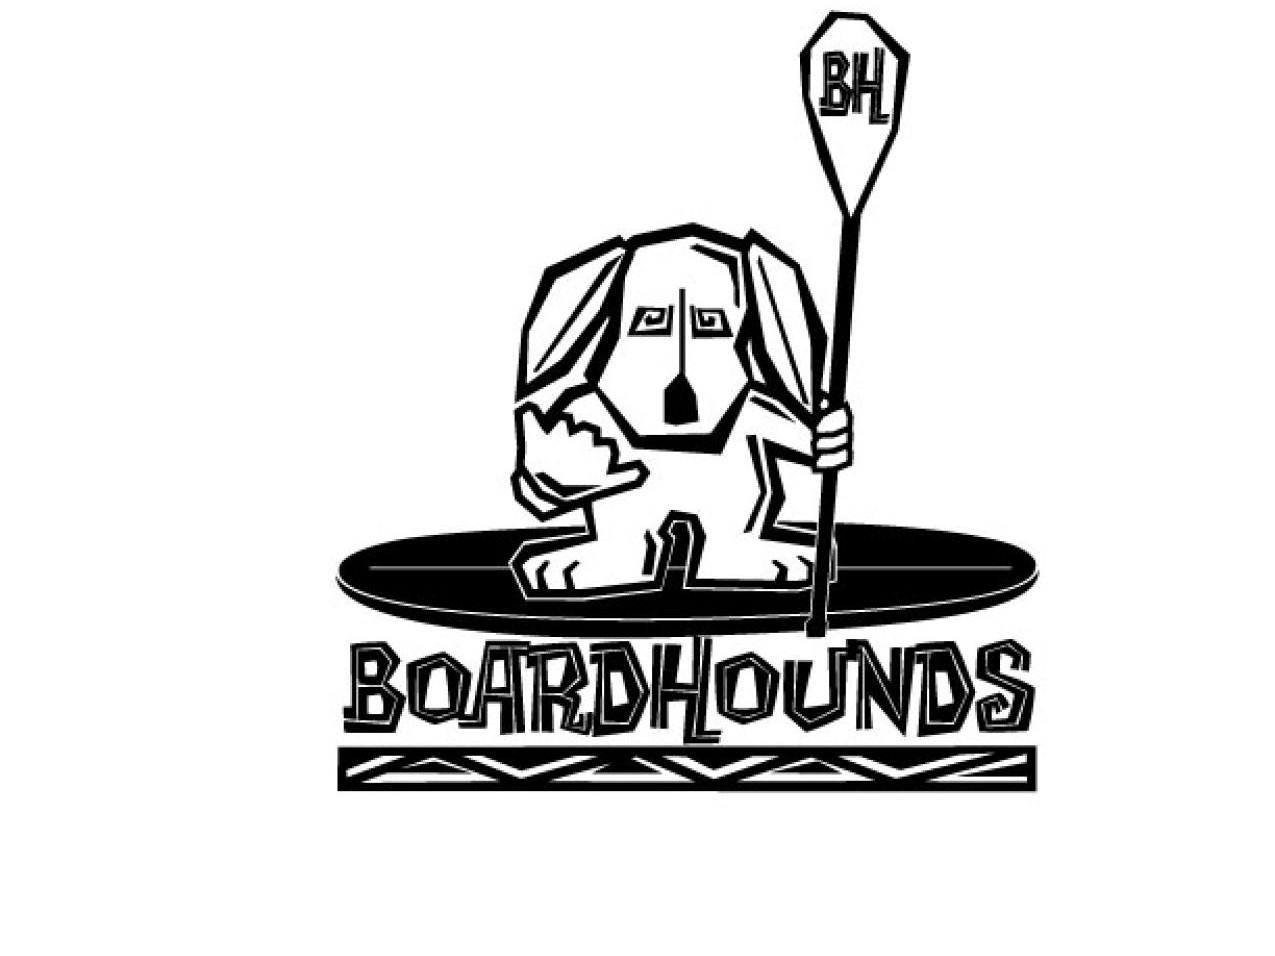 Board Hounds